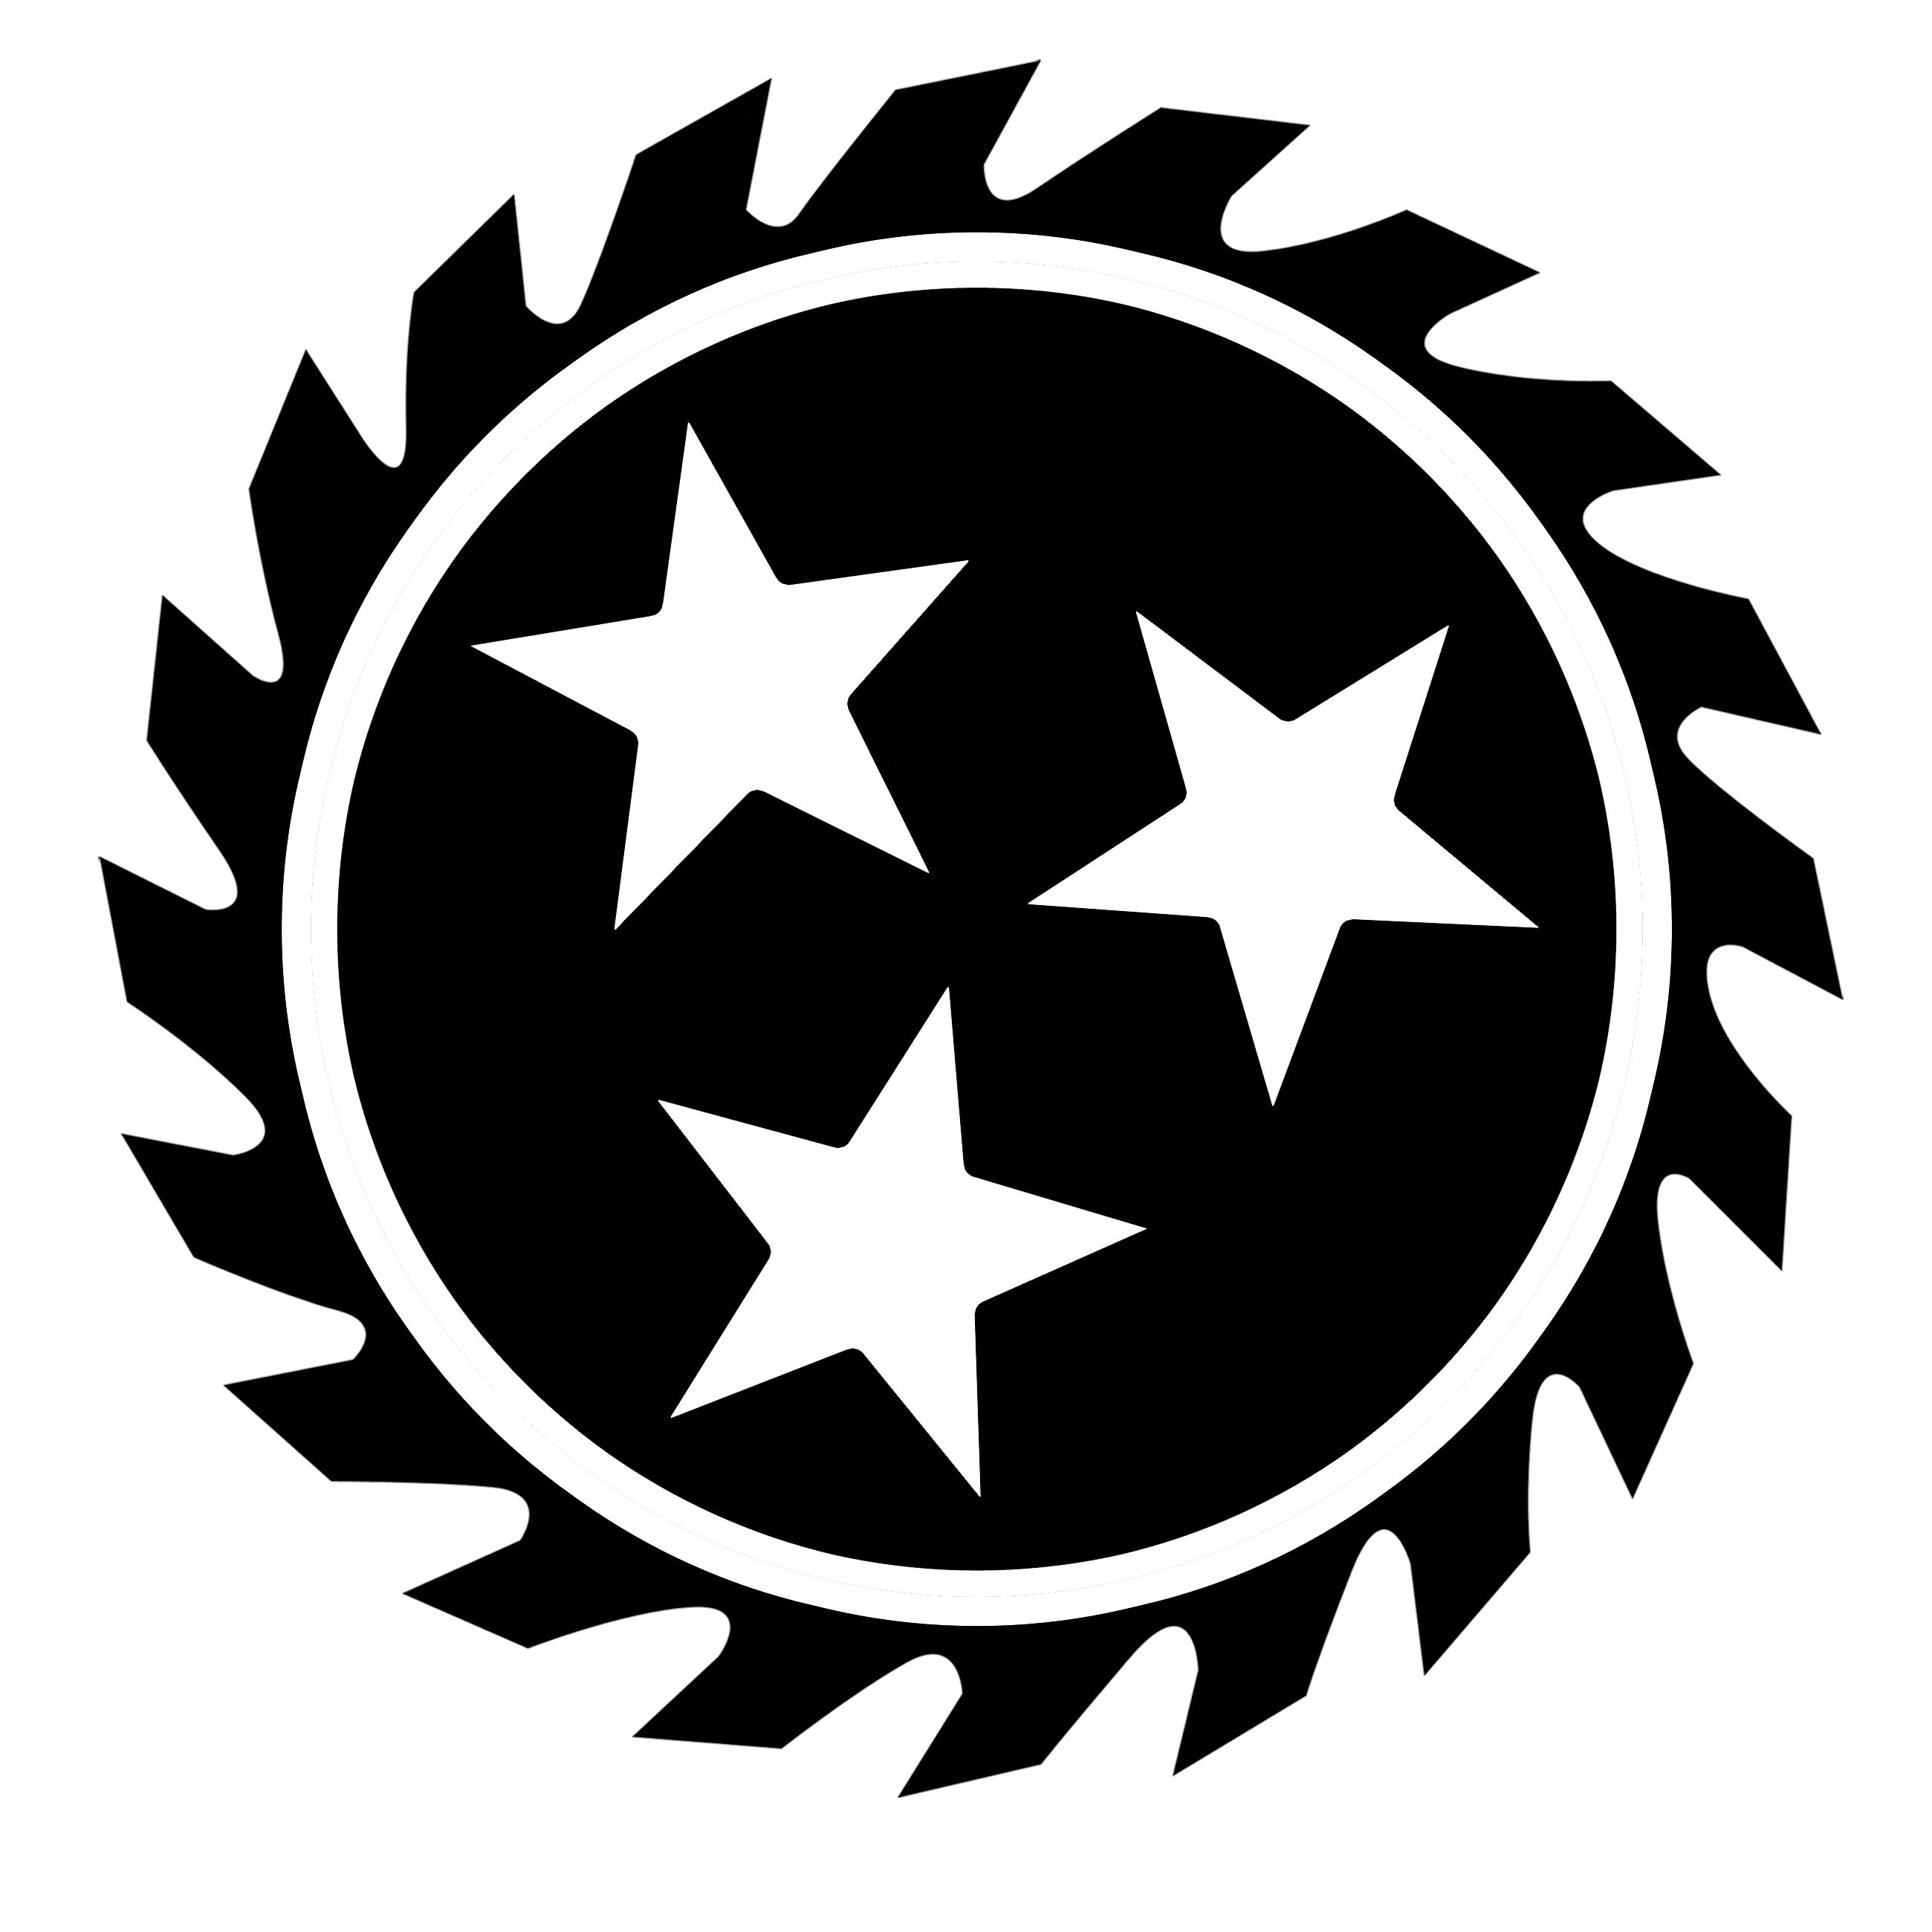 Logo design glamorous for. Free saw blade png image black and white banner stock